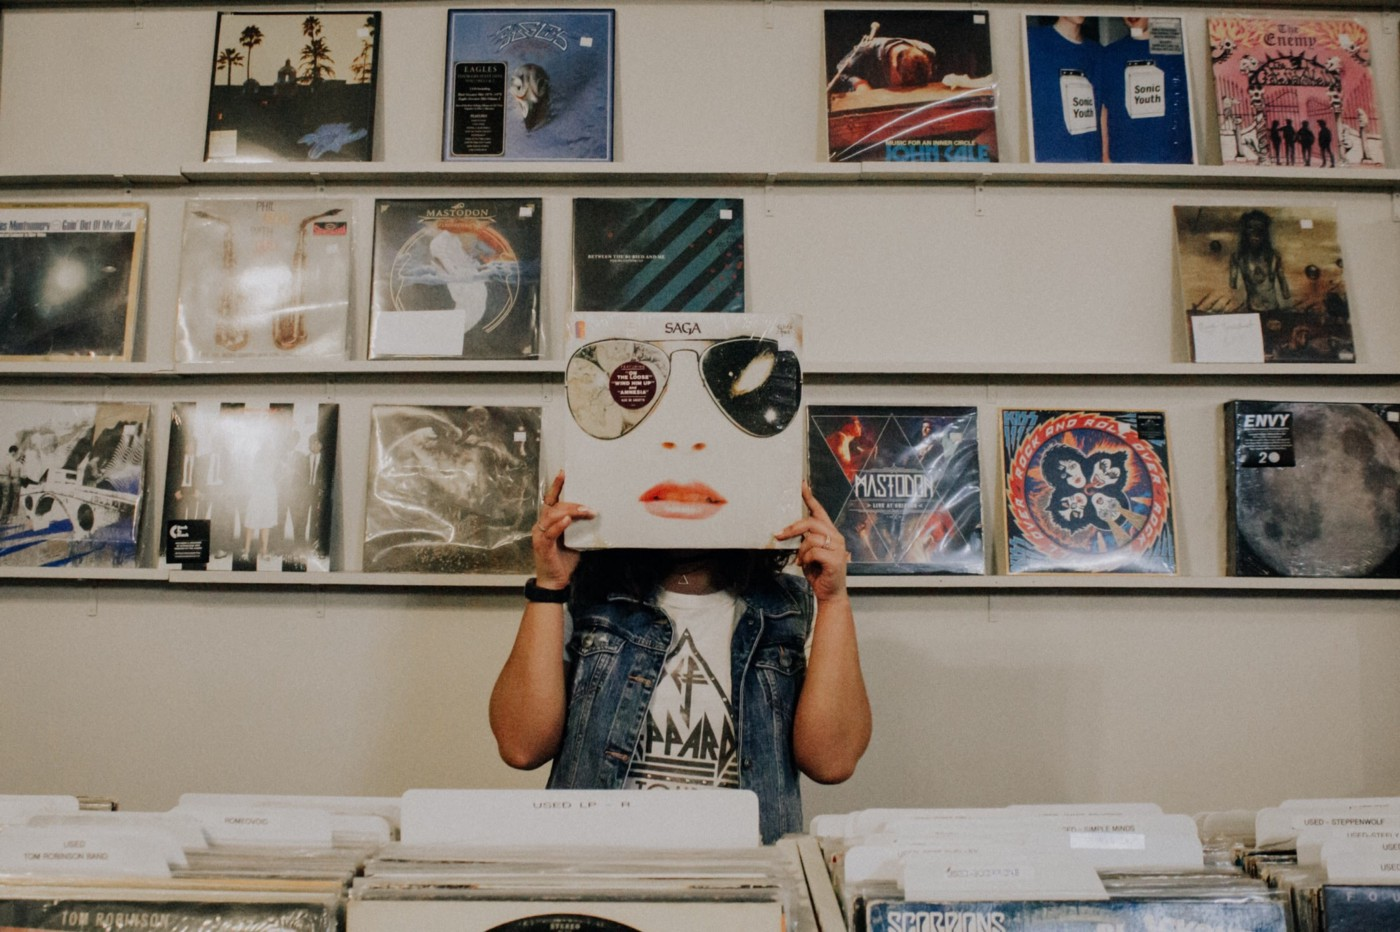 person in record store covering their face with a vinyl album cover that has an image of a face on it